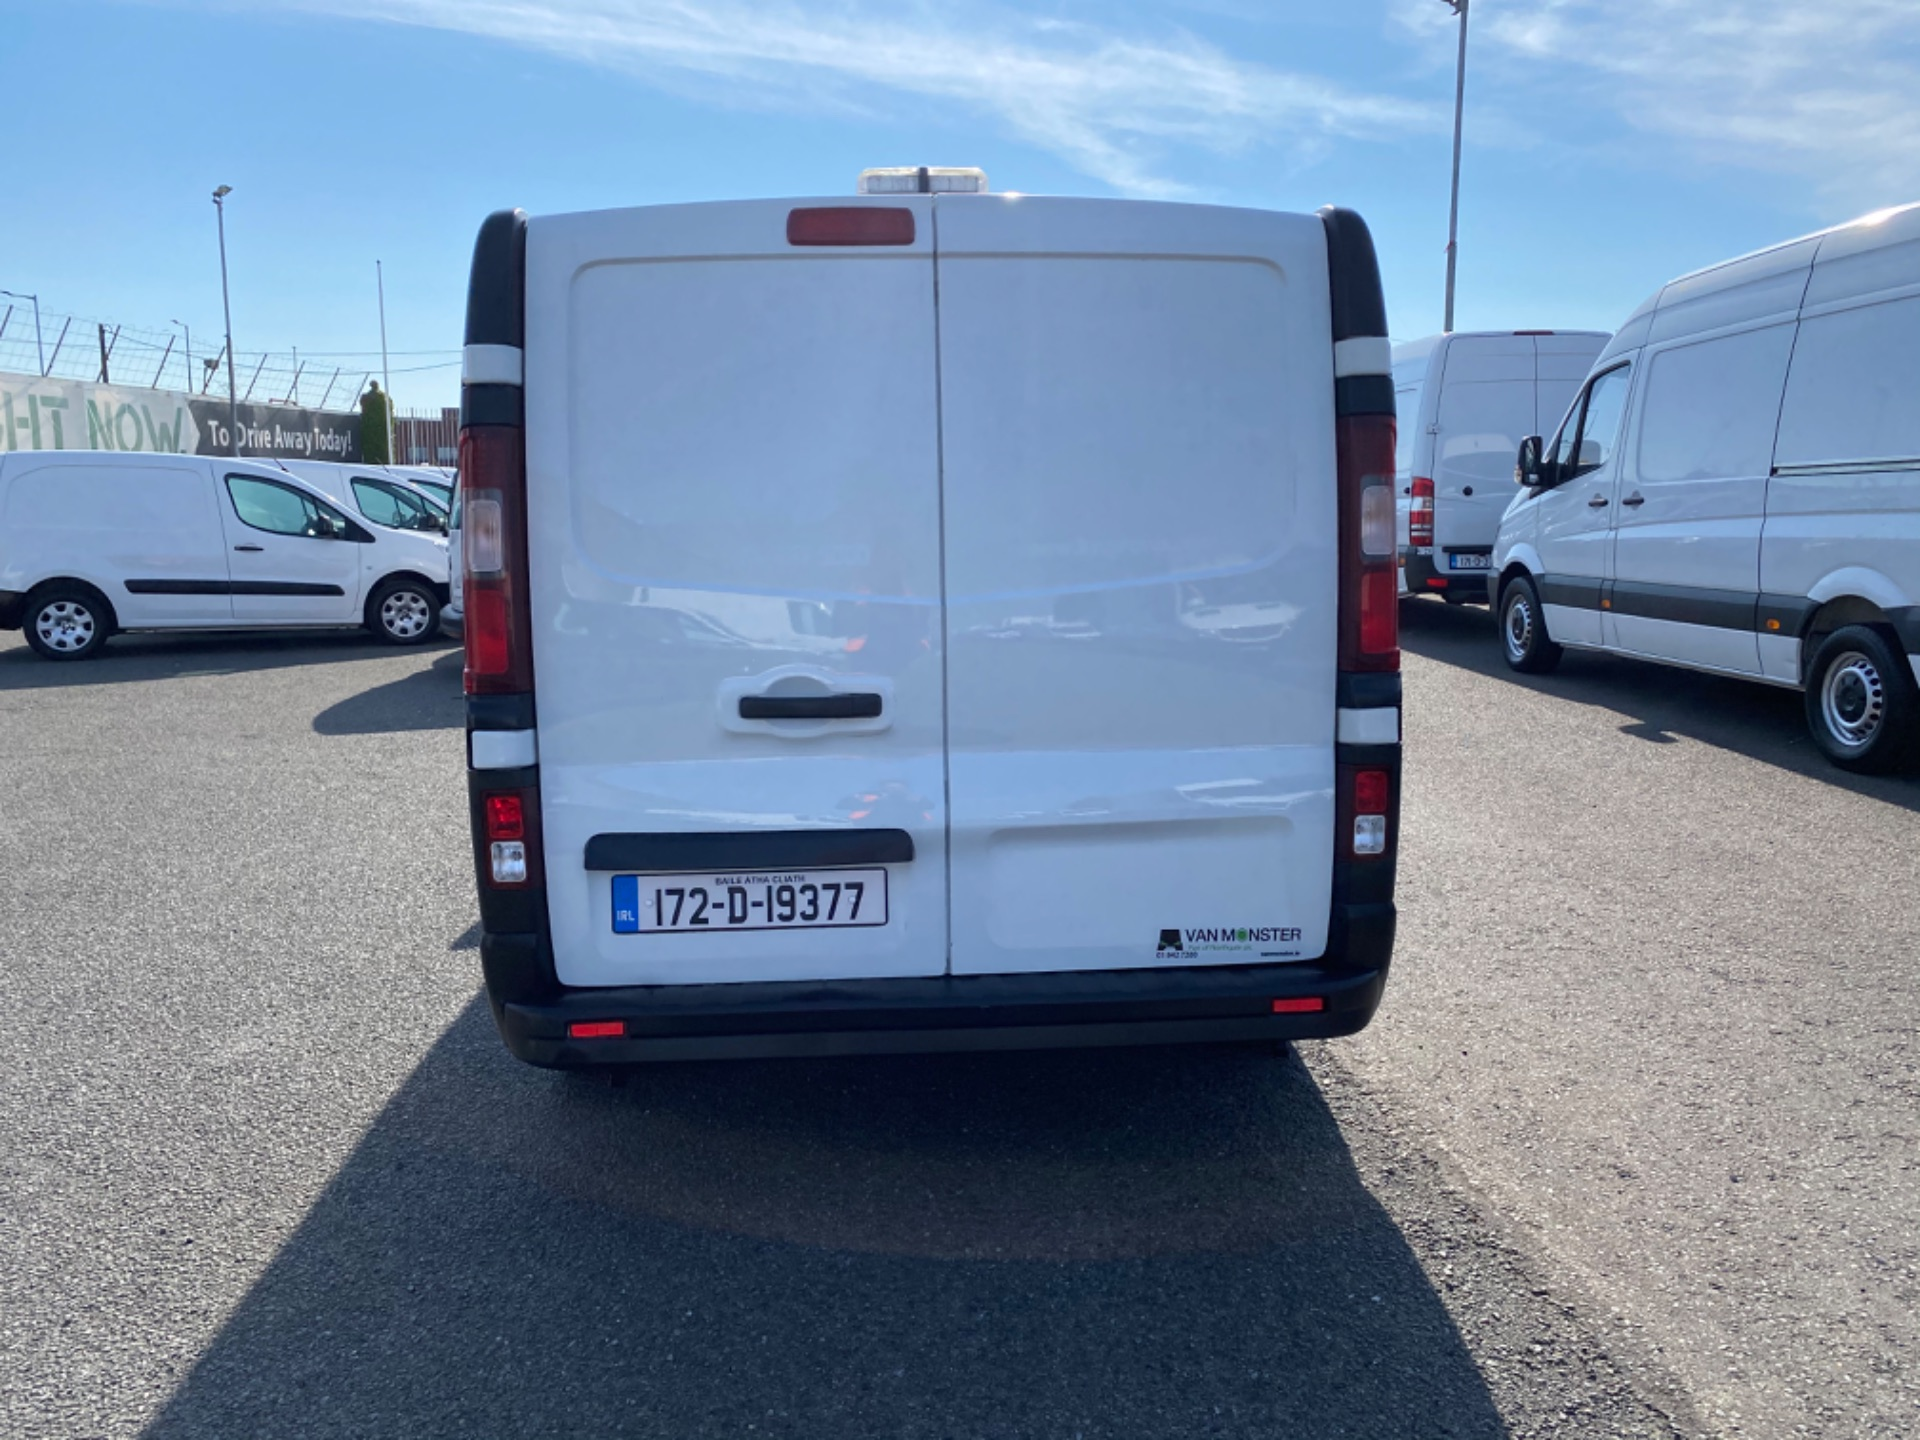 2017 Renault Trafic LL29 DCI 120 Business 3DR (172D19377) Image 6